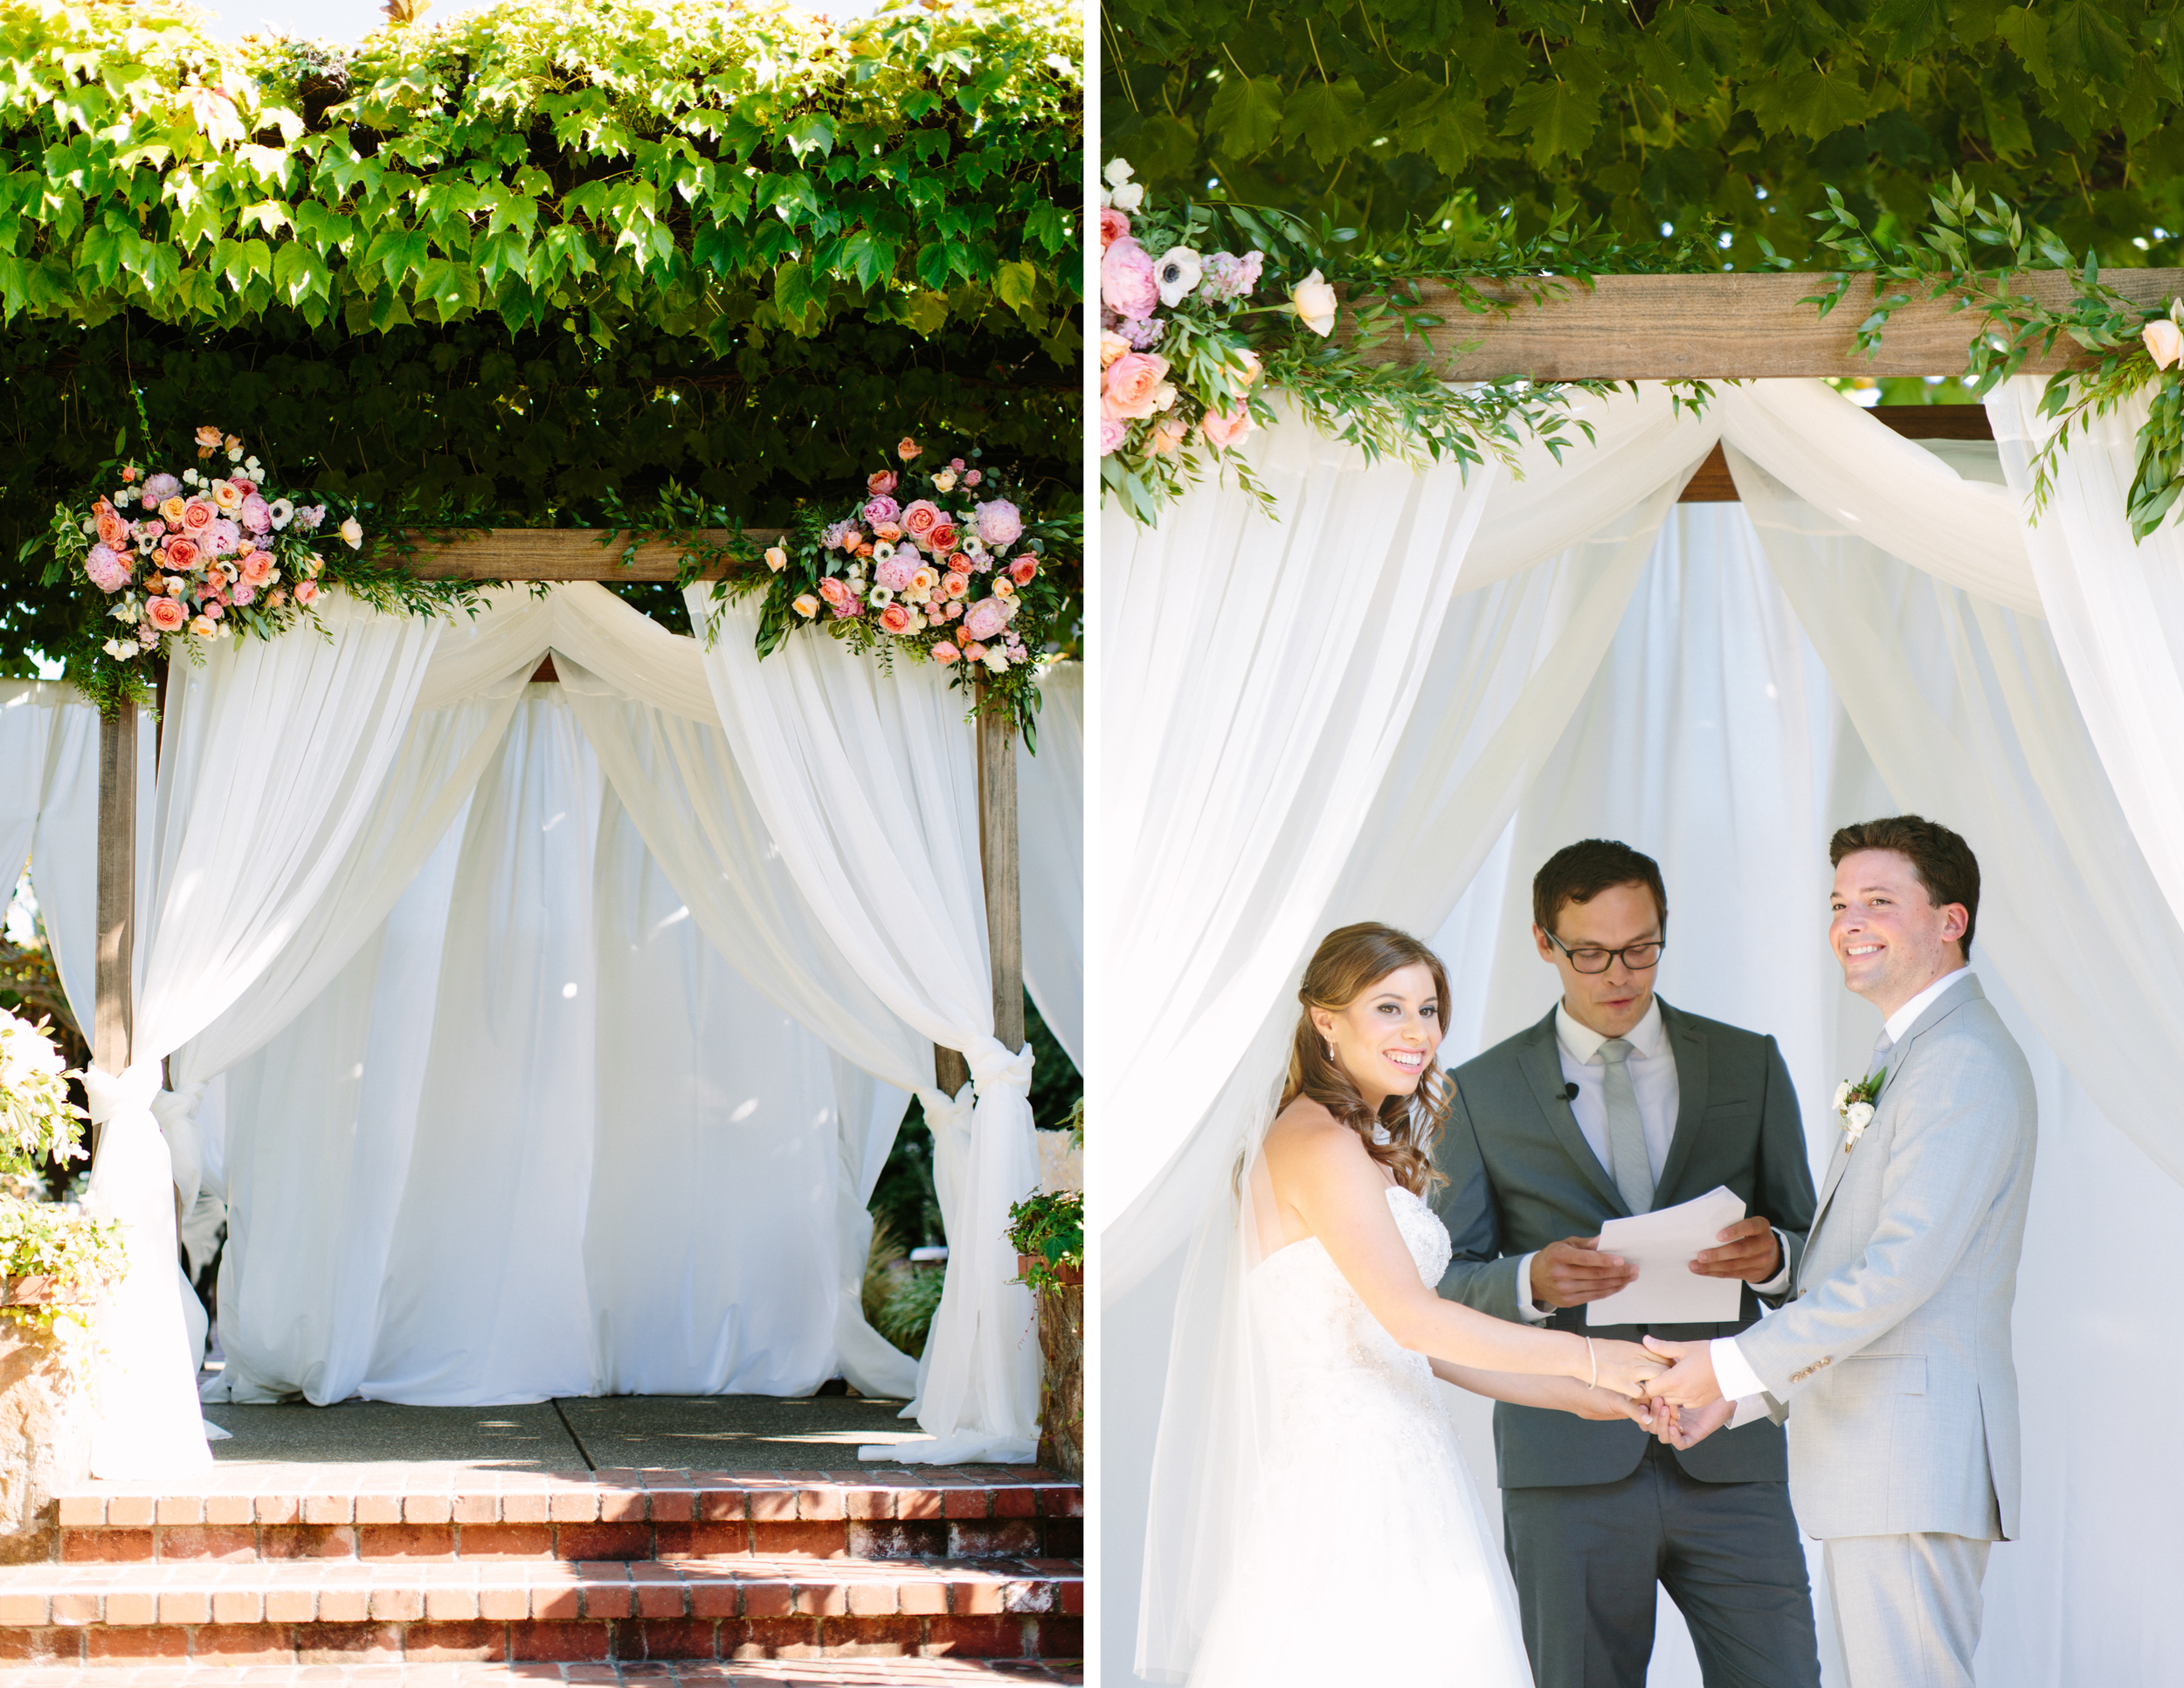 sonoma golf club wedding 6.jpg